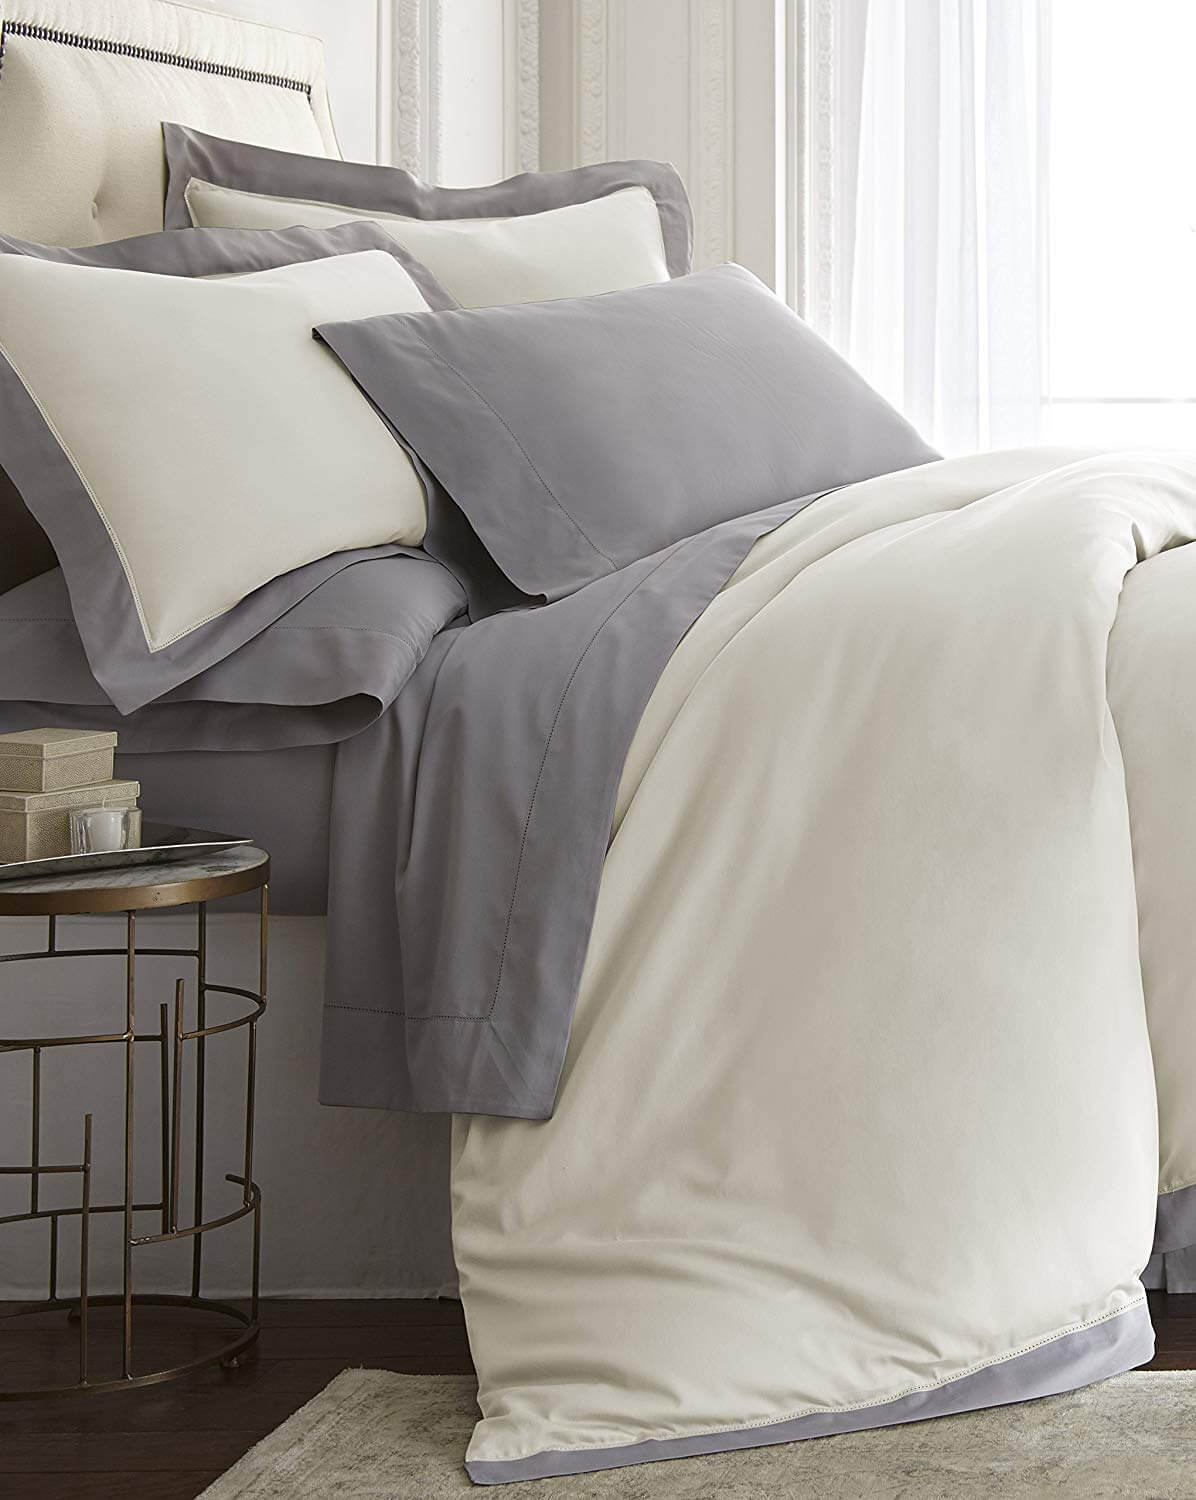 Cozy Beddings Barolo 4pcs Sheet Set Applique/Hemstitch Eucalyptus Tencel Lyocell Cotton Grey Color | King Size Bed